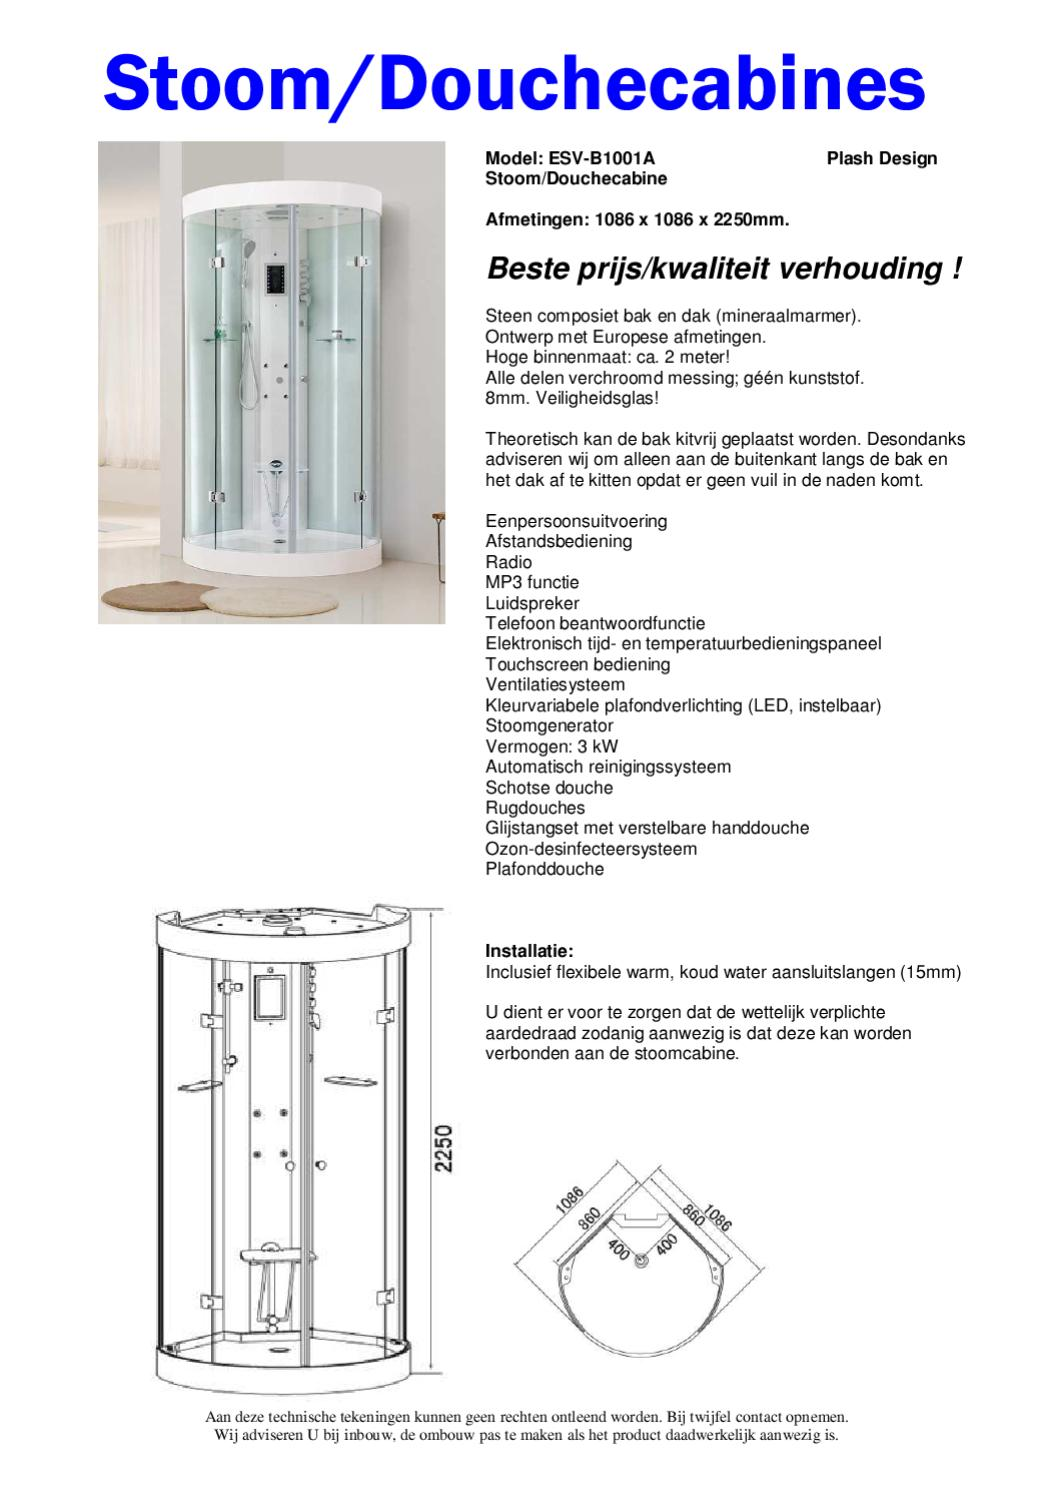 Douchecabine Kitten Buitenkant Stoomdouchecabines 2011 By Esv Sanitair Issuu